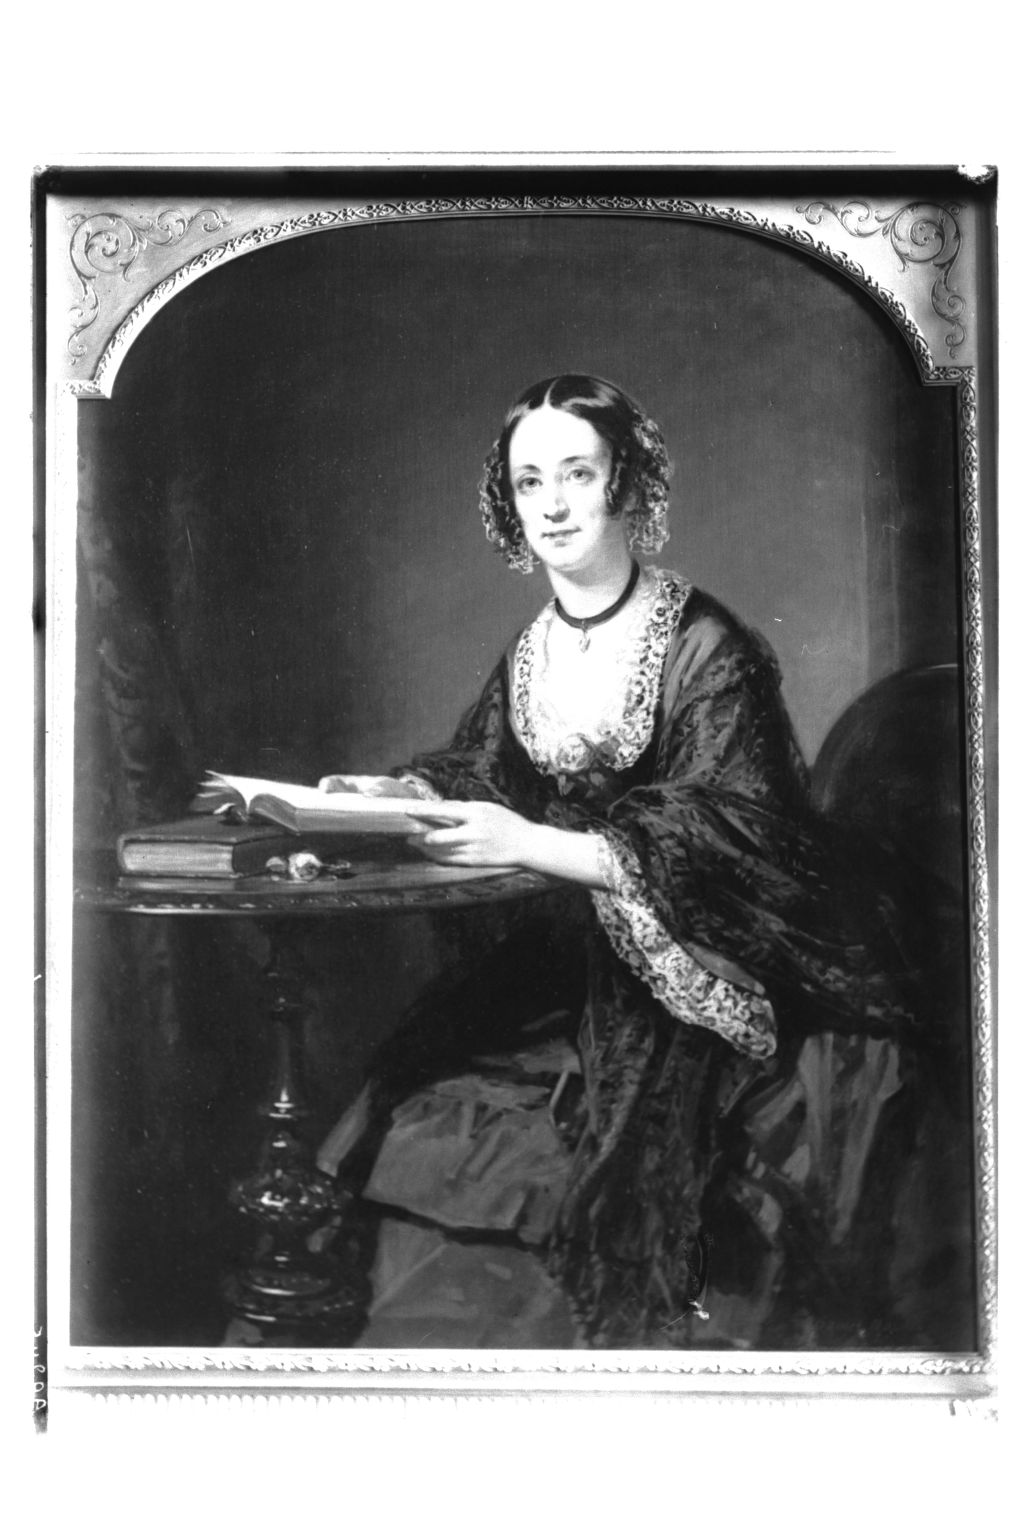 Mrs Gilmour gr.m. (grandmother).